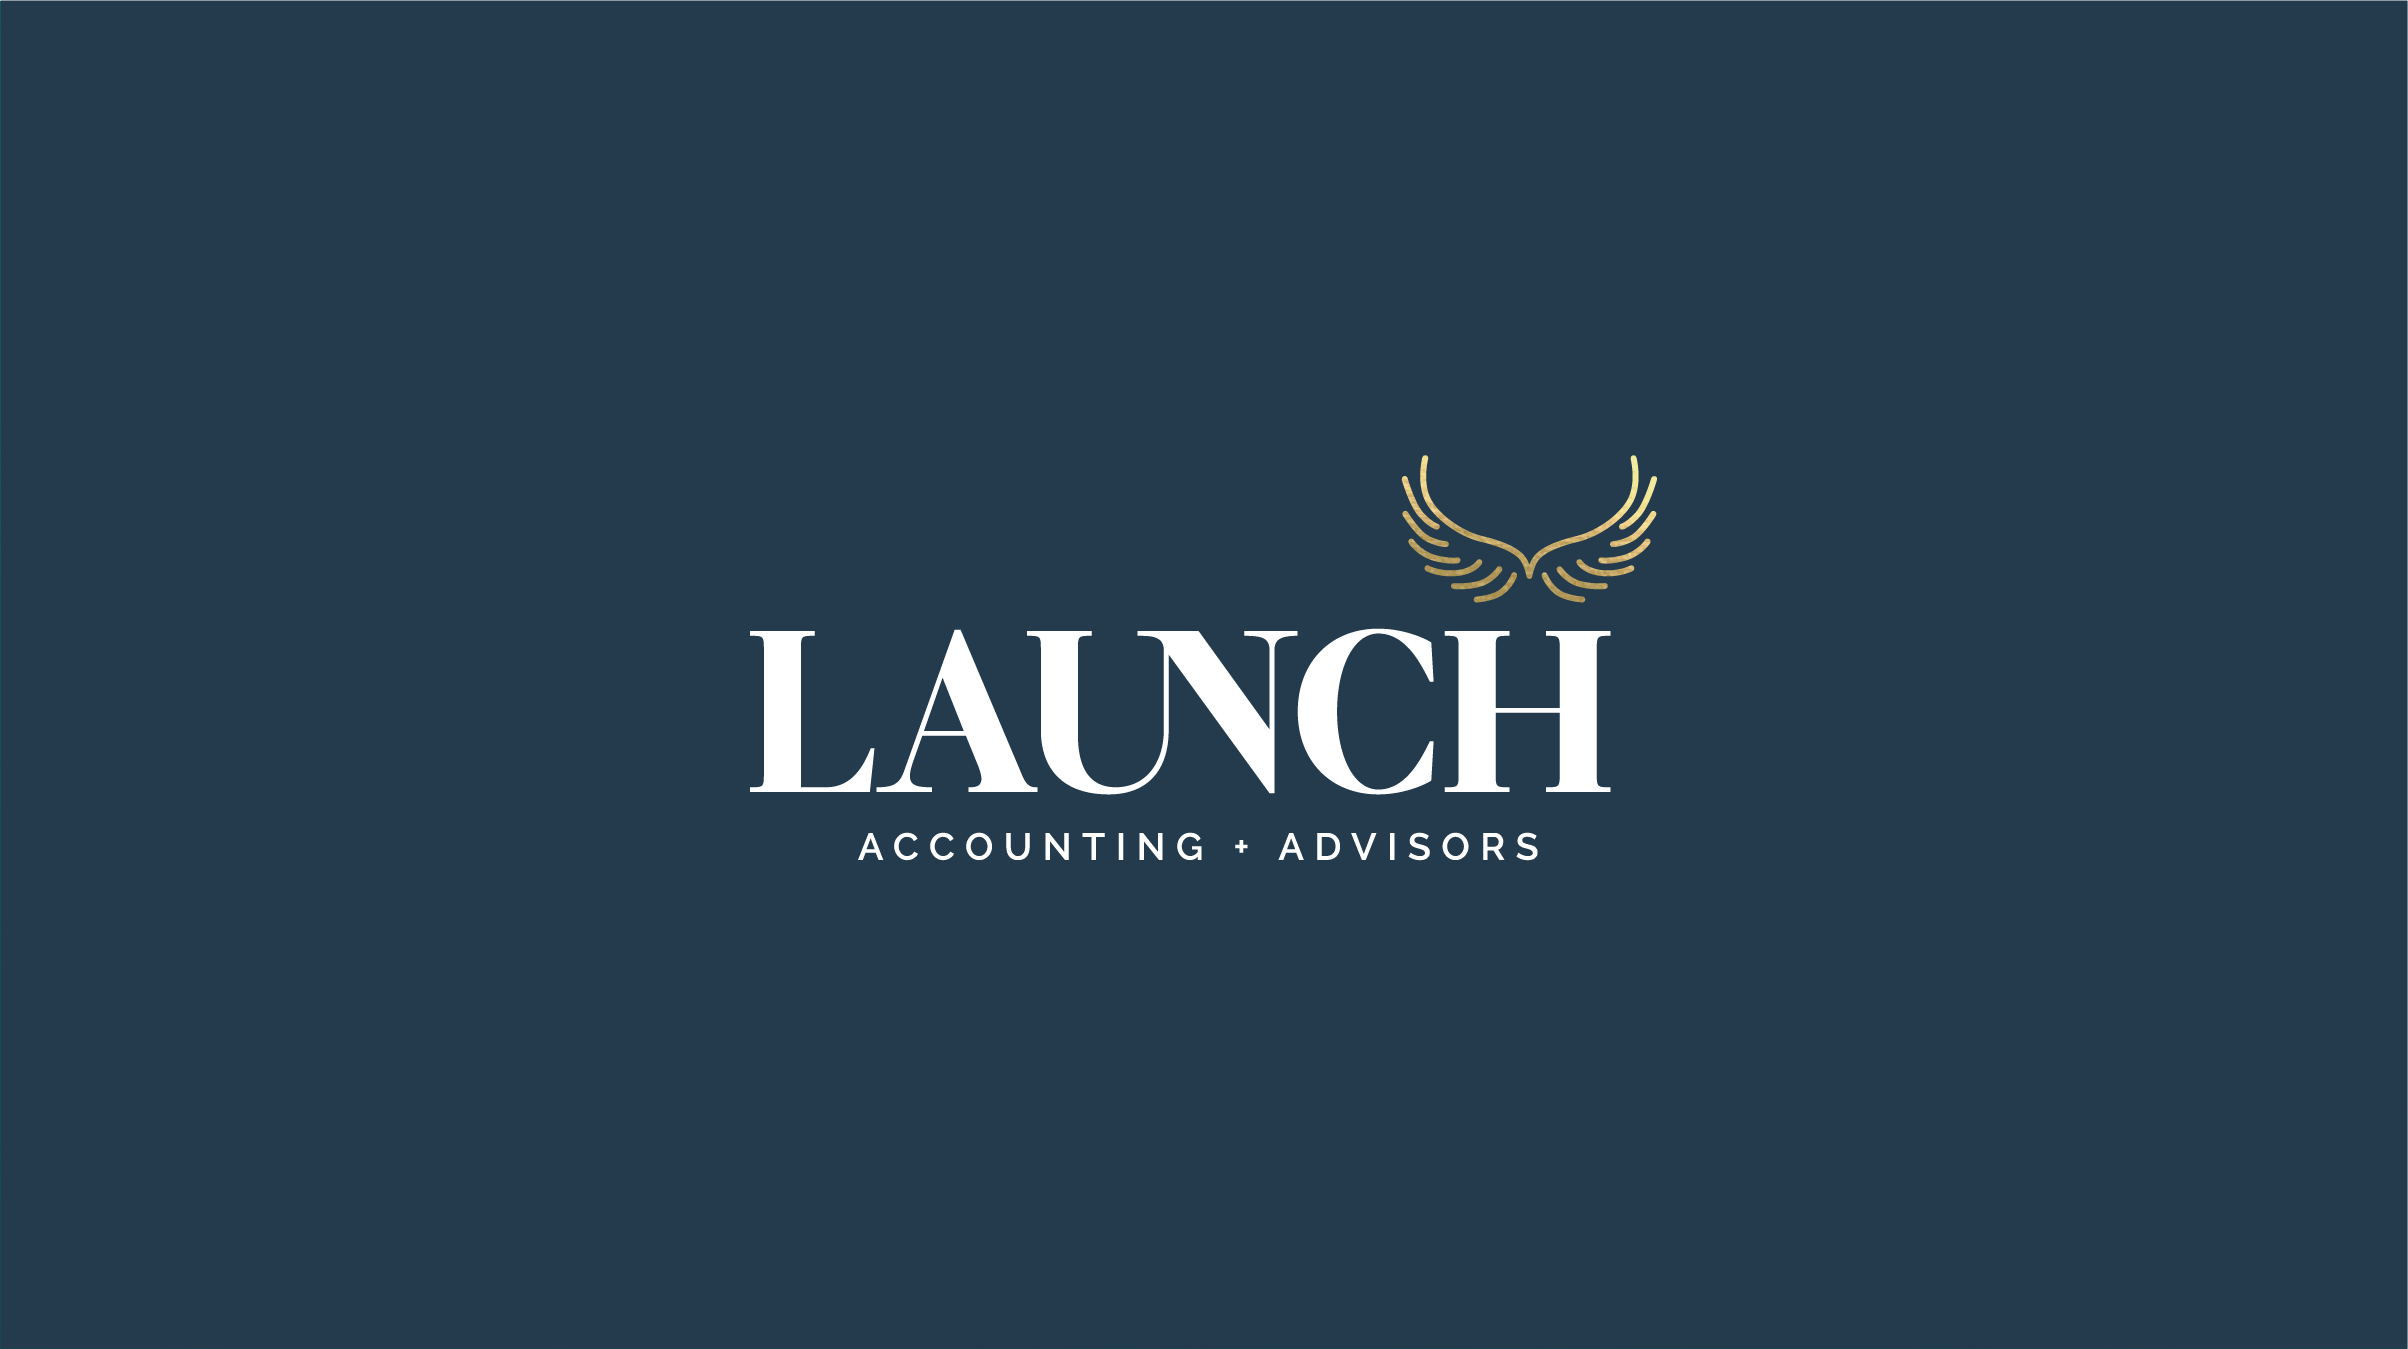 Launch Accounting